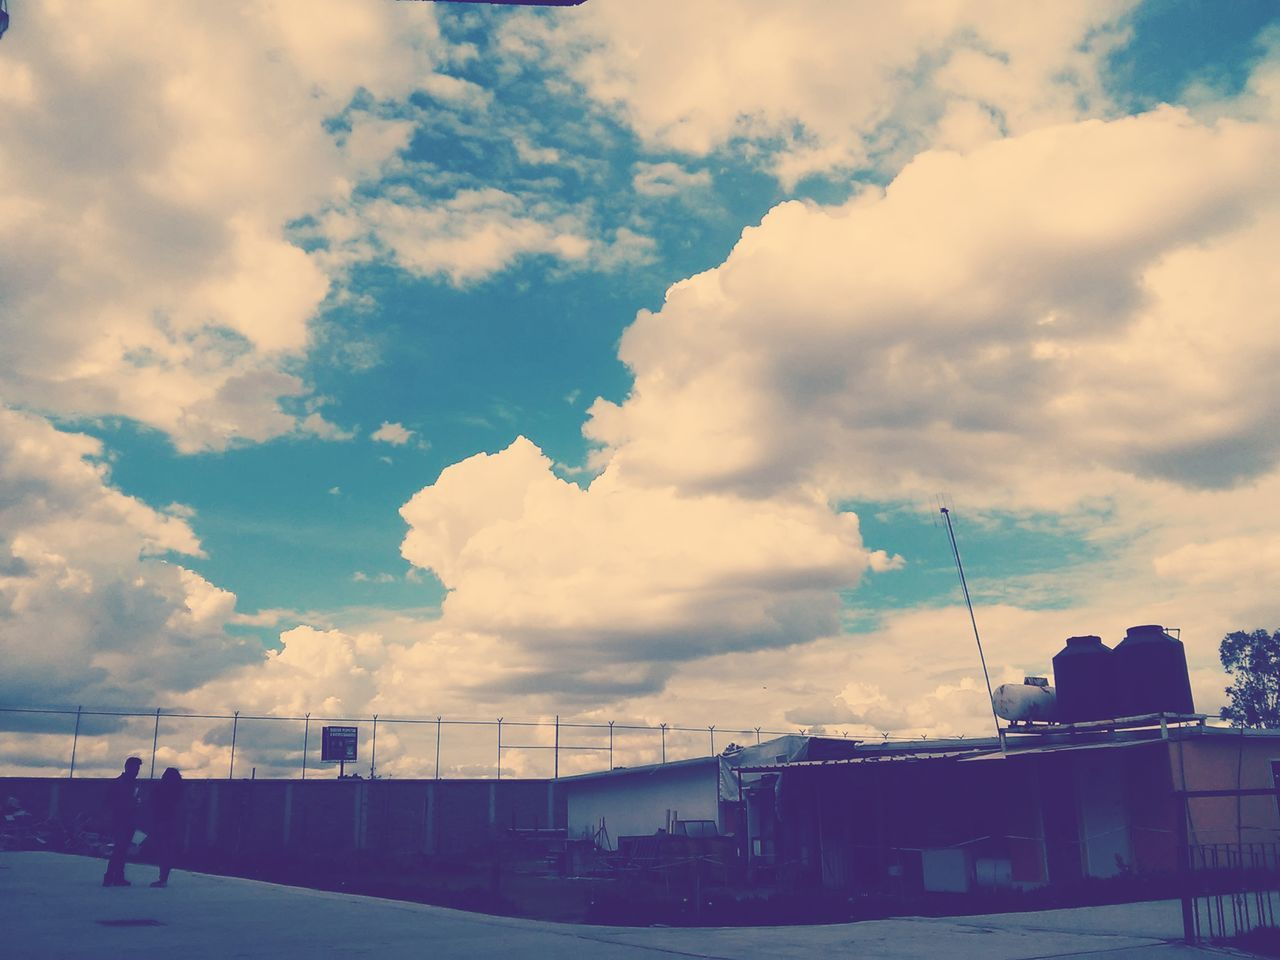 cloud - sky, sky, men, real people, outdoors, transportation, day, architecture, nature, people